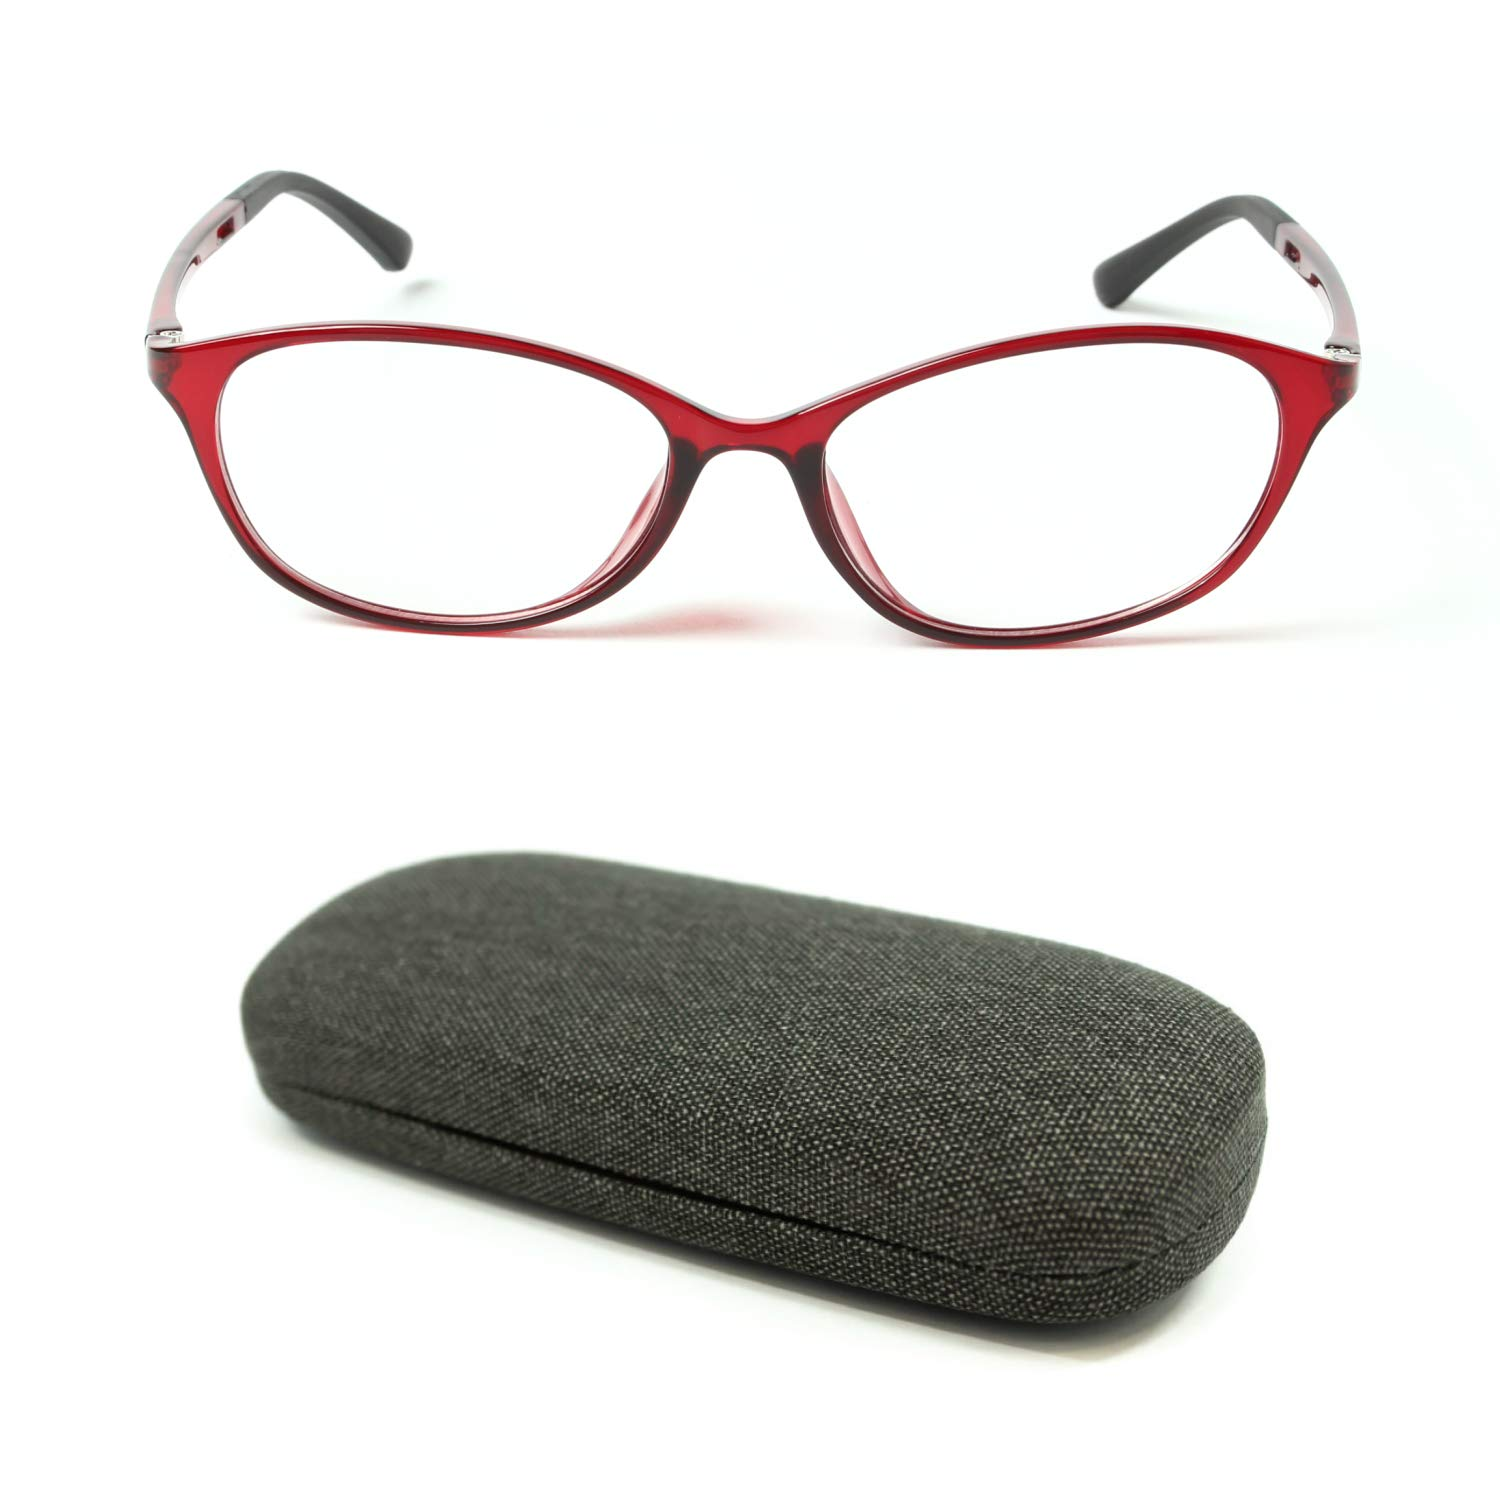 MIDI High Quality Blue Light Blocking Reading Glasses for Women (M-112) with a Hard Shell Eyeglass Case / TR90 Frame (Red,+1.00)(m112c2-100) by MIDI ミディ